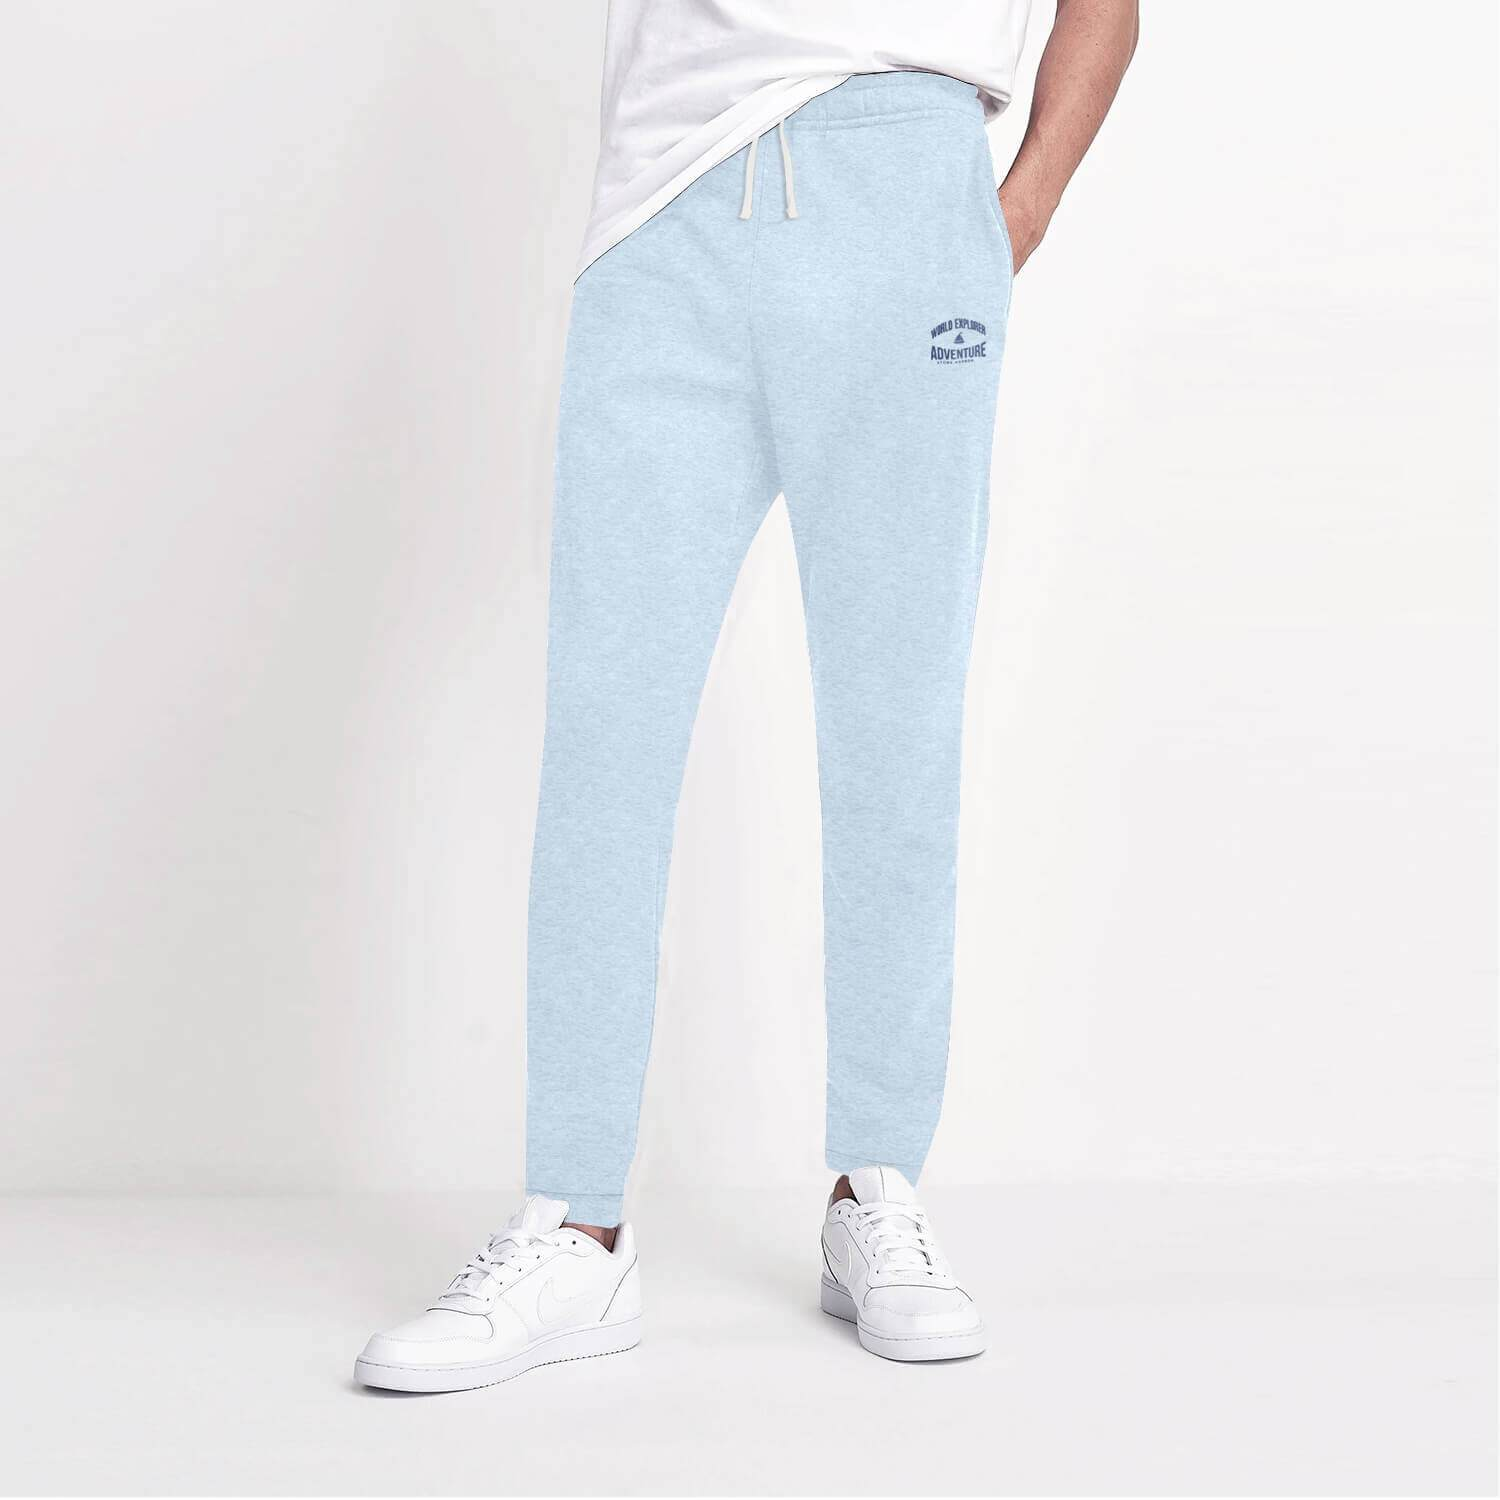 Stone Harbor Men's Jogger Sky / S STONE HARBOR SLIM FIT WORLD ADV LOUNGE WEAR